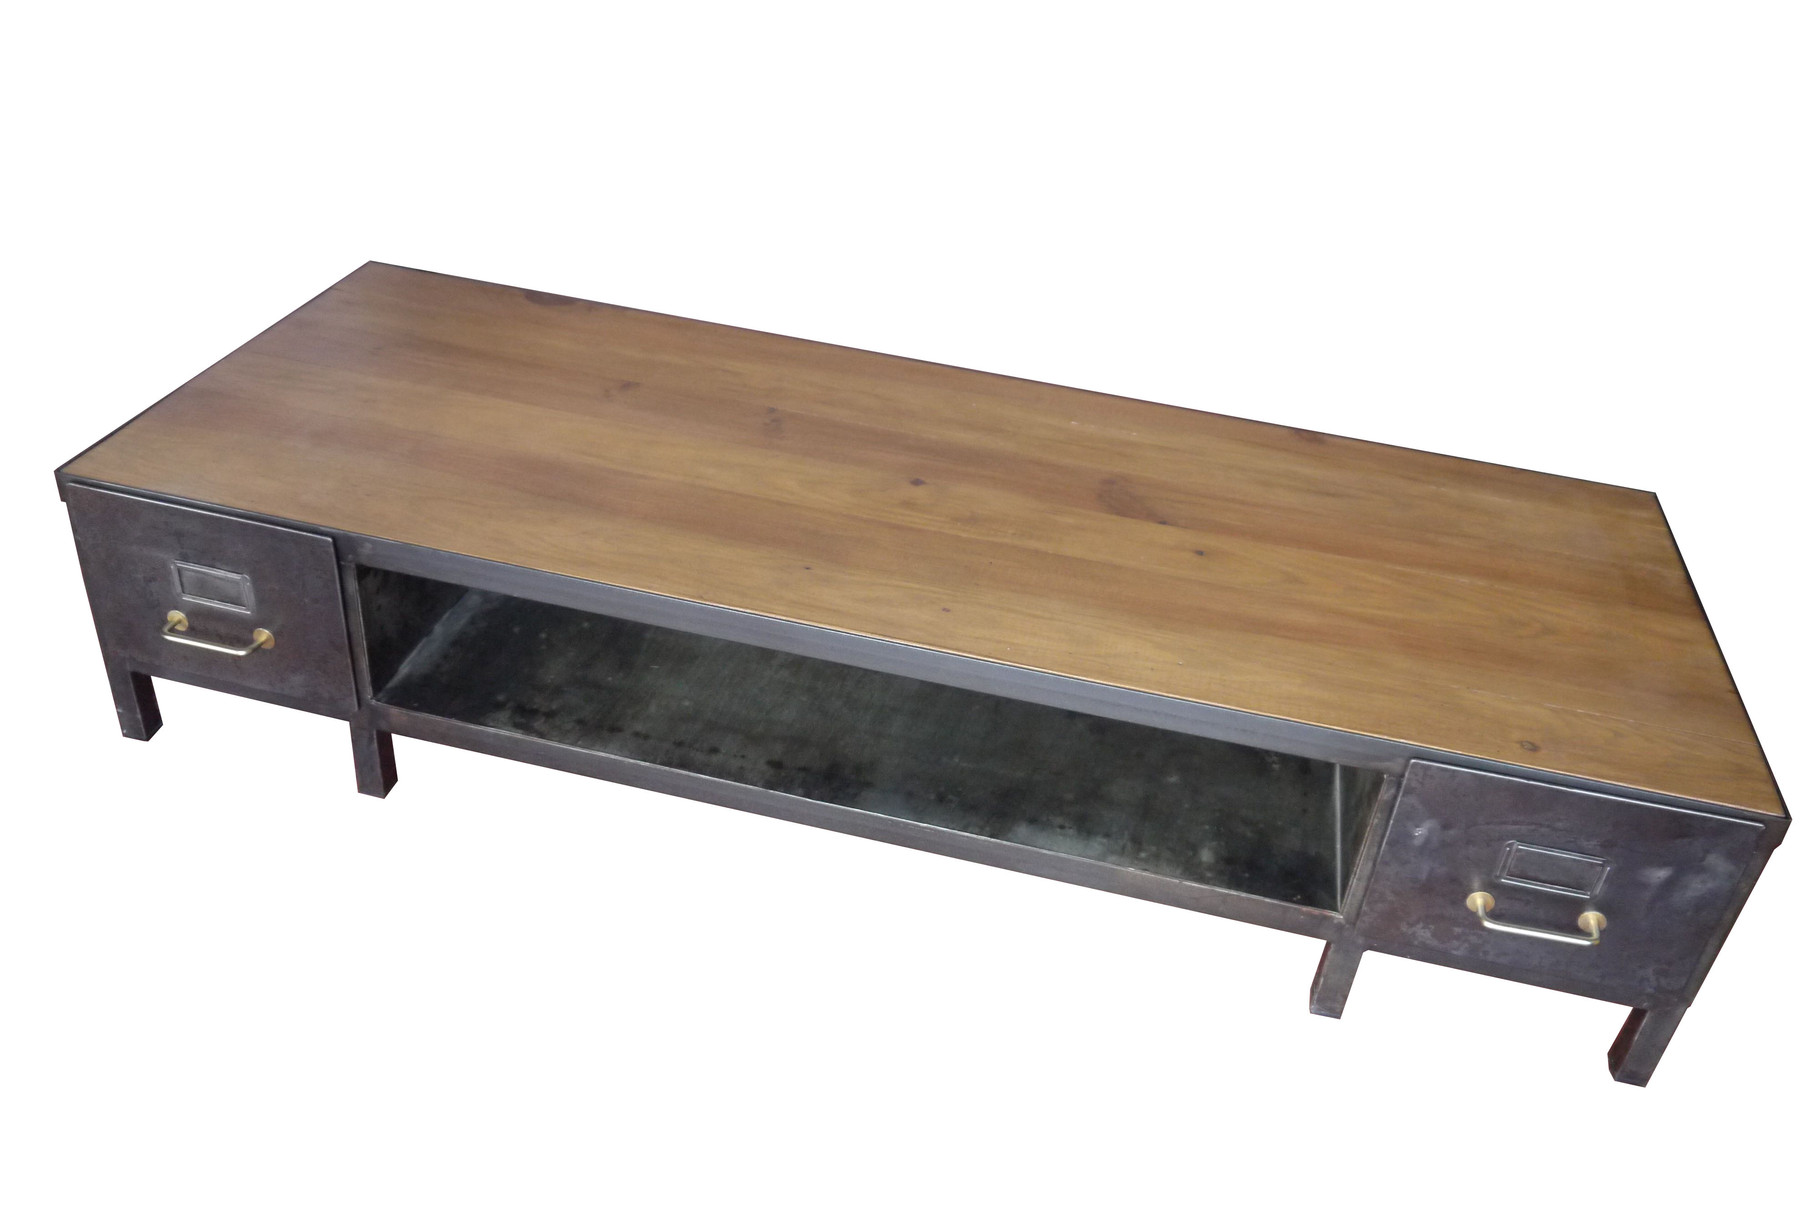 Table Basse Meuble Tv Industriel Atelier Vintage Mobilier  # Vestiaire Industrielle Meuble Tv